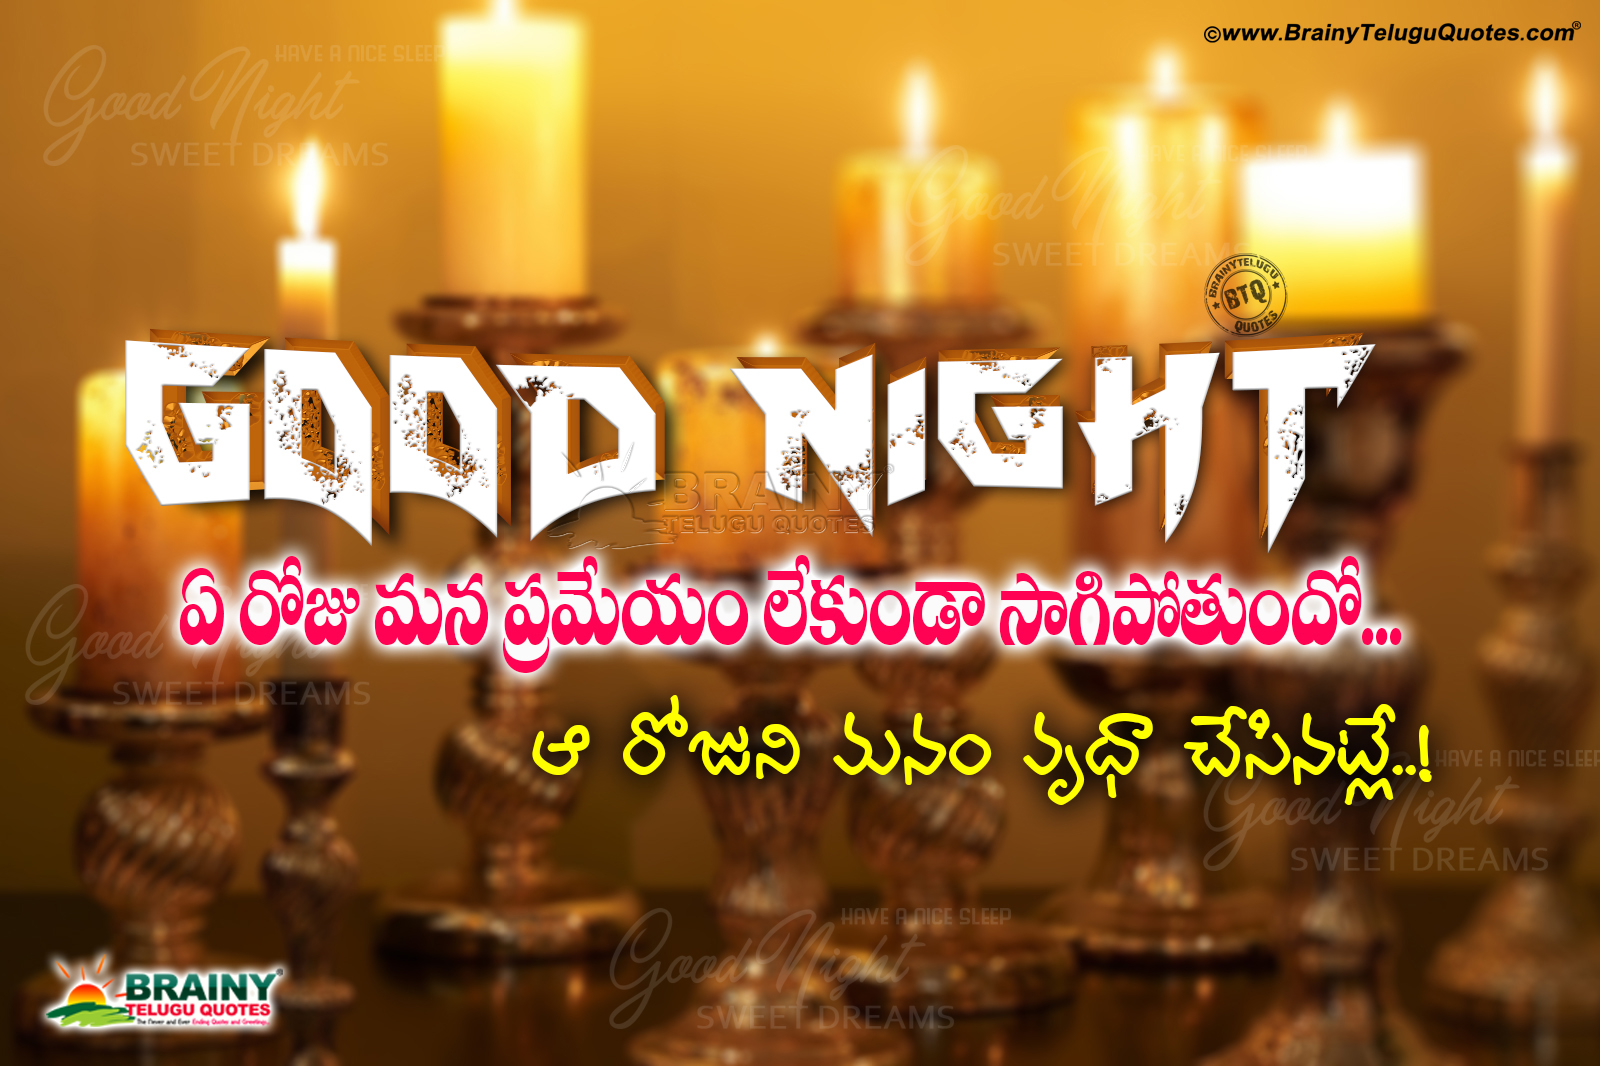 Good Night Motivational Quotes In English: Telugu Best Inspirational Good Night Quotes Hd Wallpapers